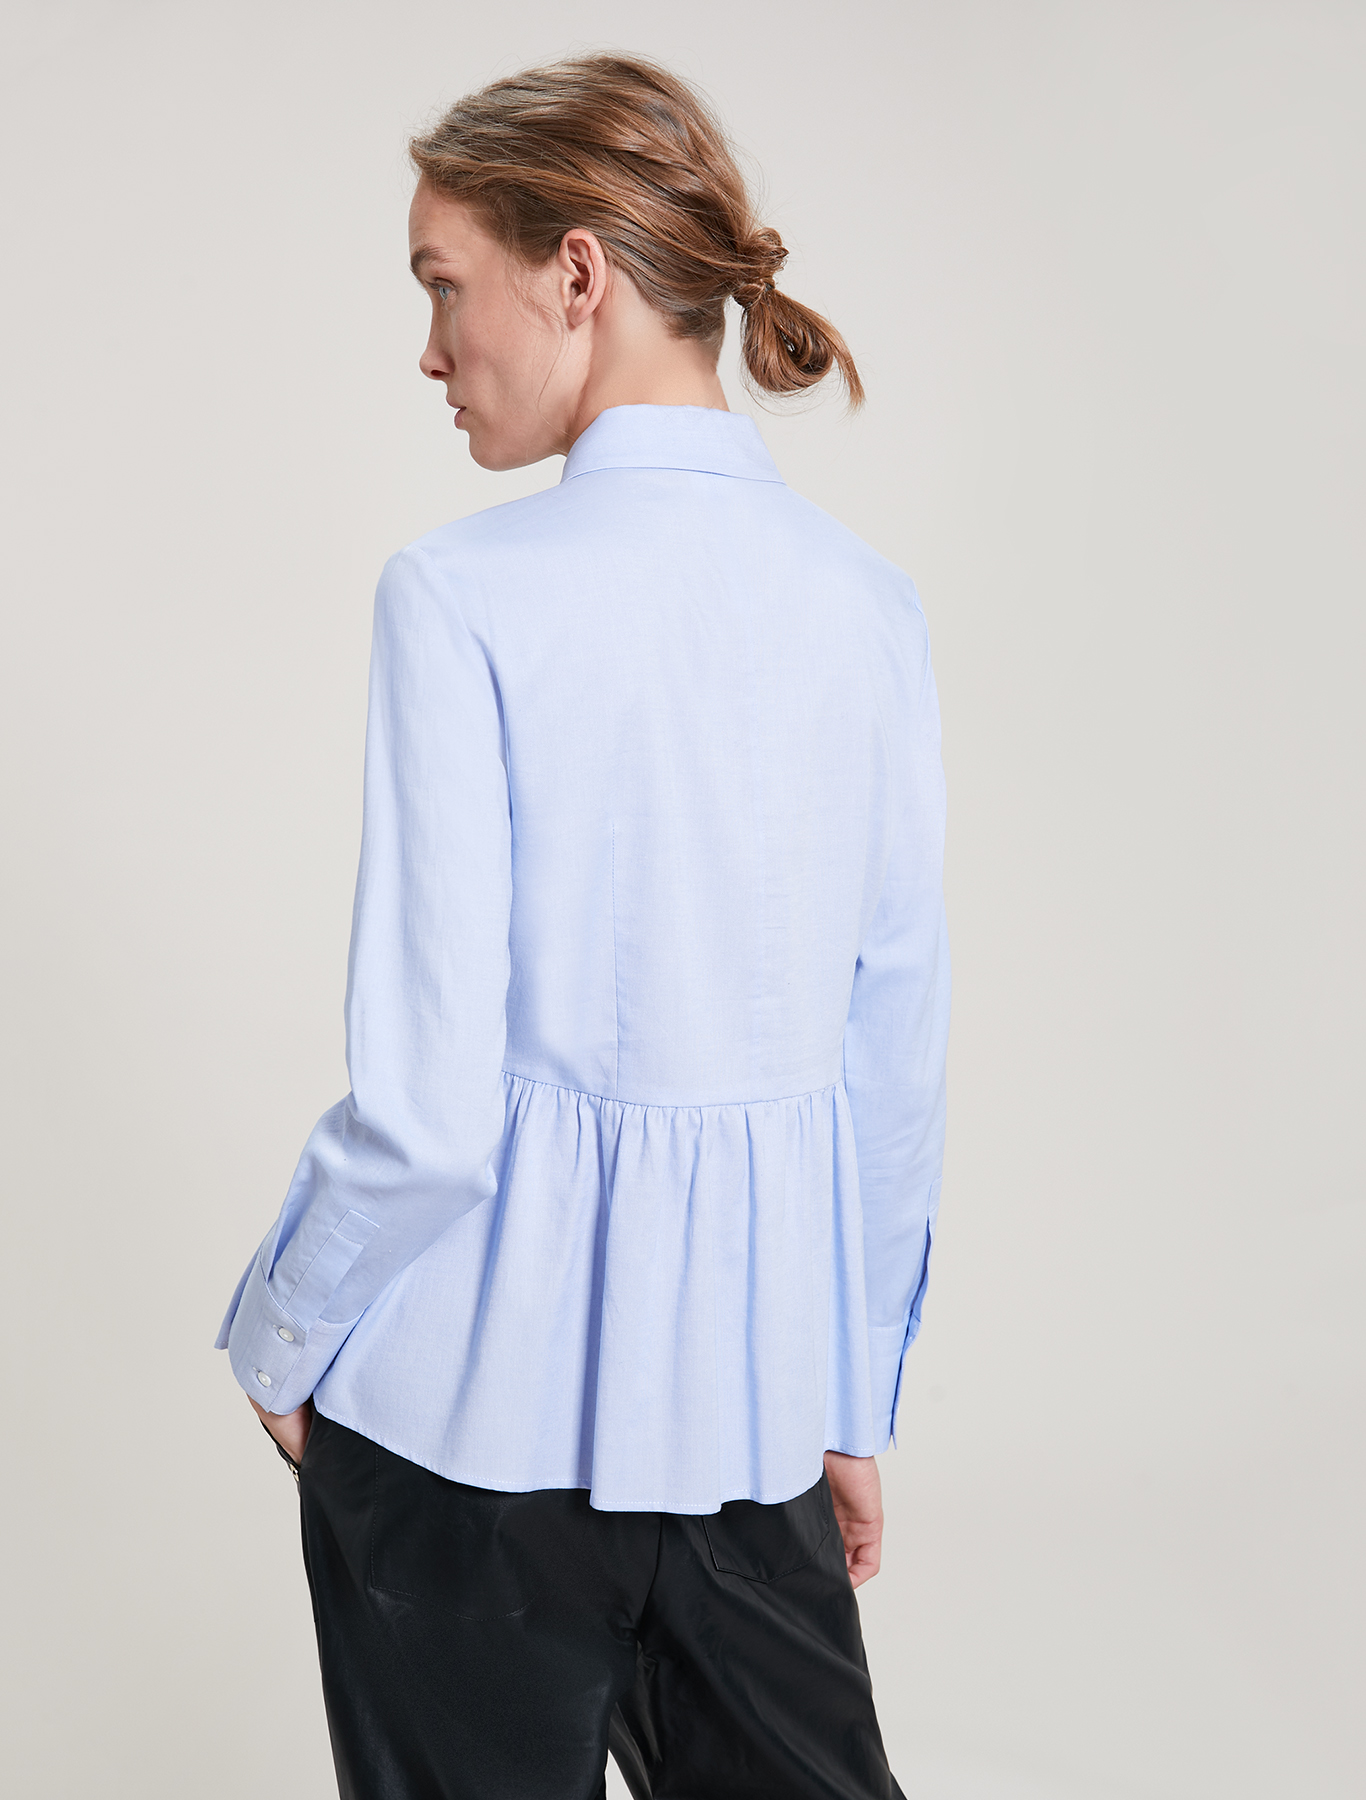 Oxford cotton shirt - light blue - pennyblack